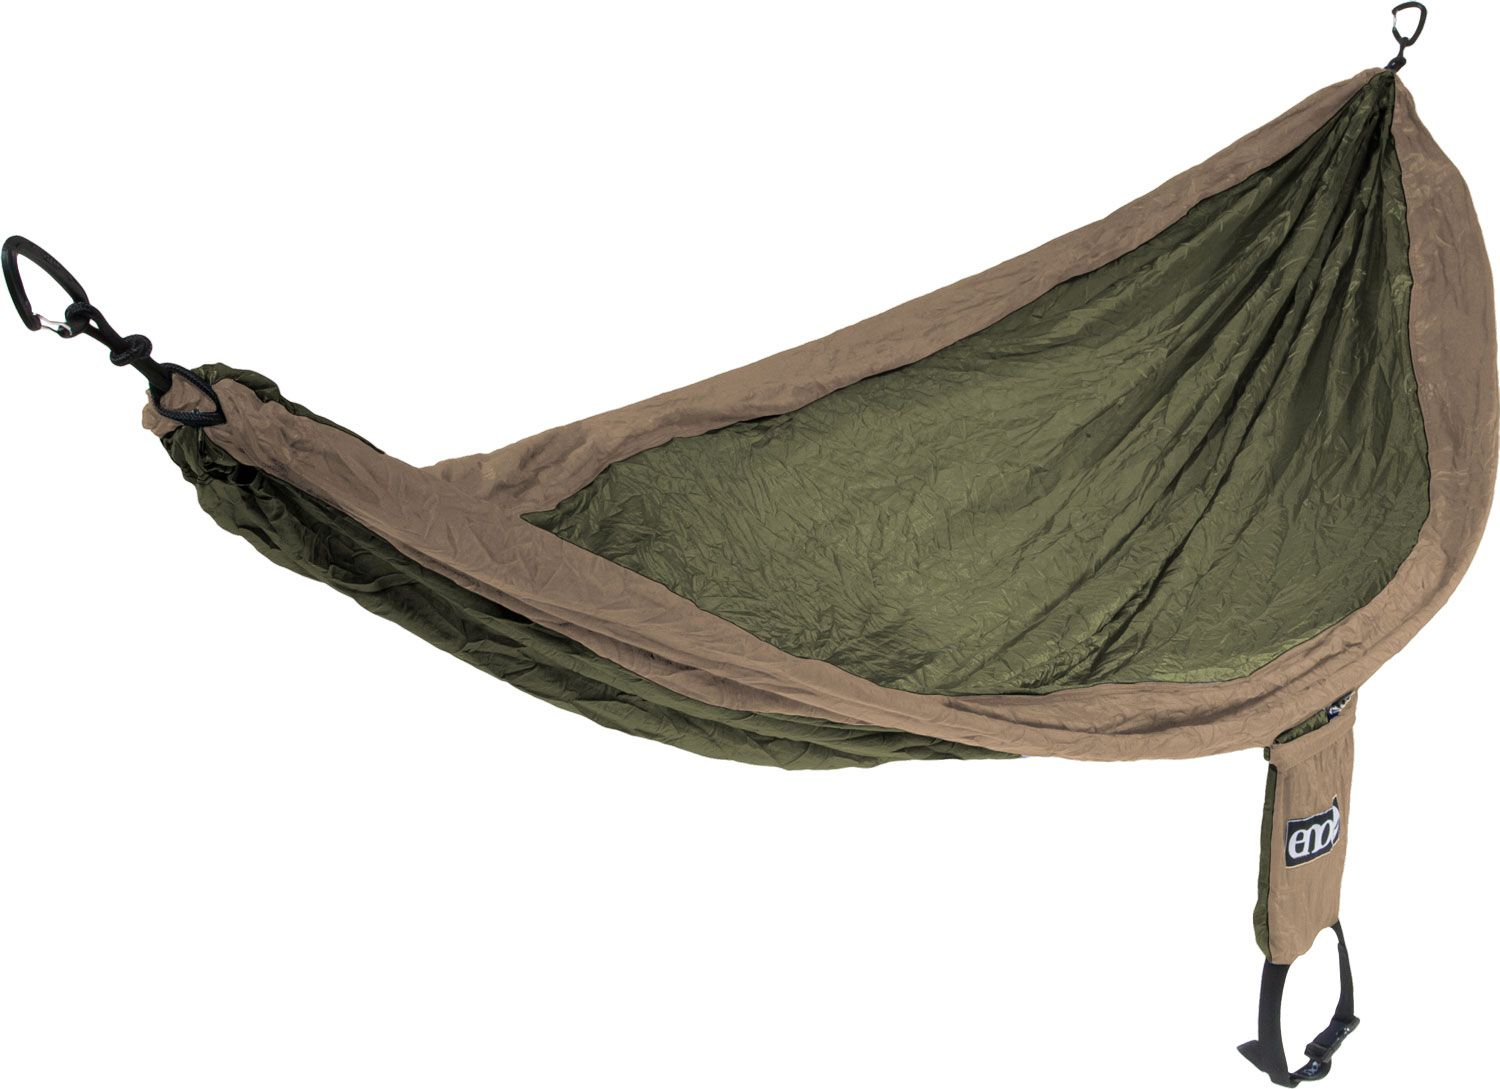 product image    eno singlenest hammock hammocks  portable  u0026 tree hammocks   best price guarantee at dick u0027s  rh   dickssportinggoods